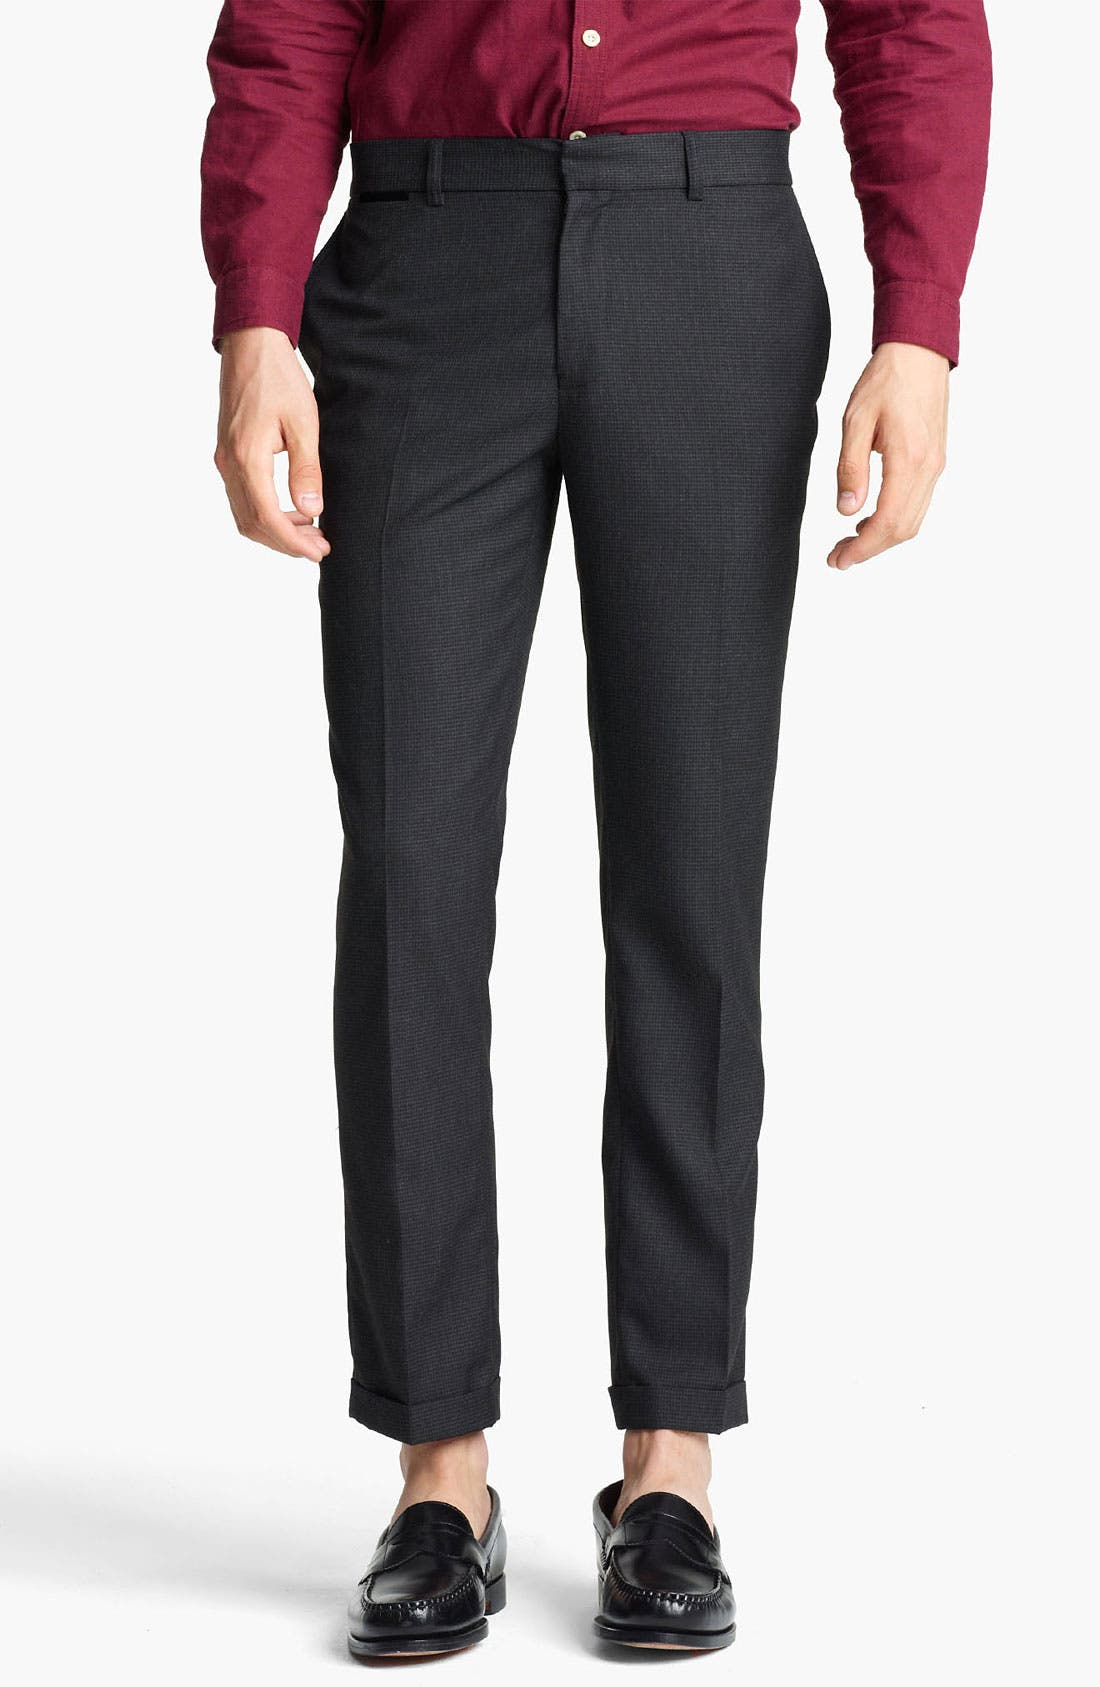 Main Image - Topman Houndstooth Skinny Trousers